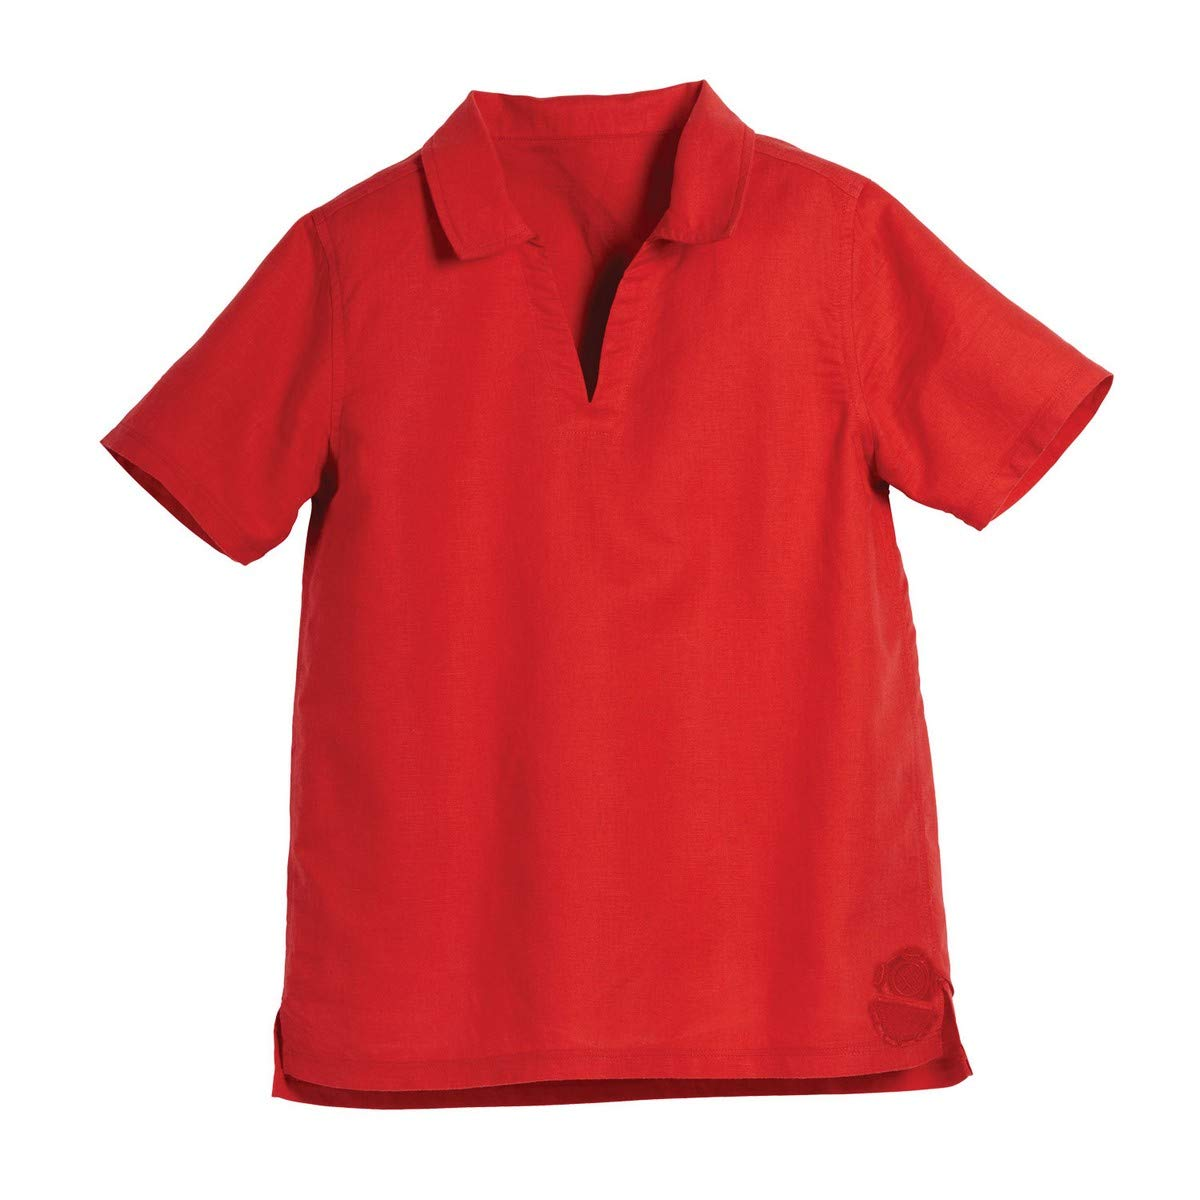 Beachcombers Kids Red Linen Cotton V-Neck Collar Short Sleeve Polo Shirt Apparel Extra Large